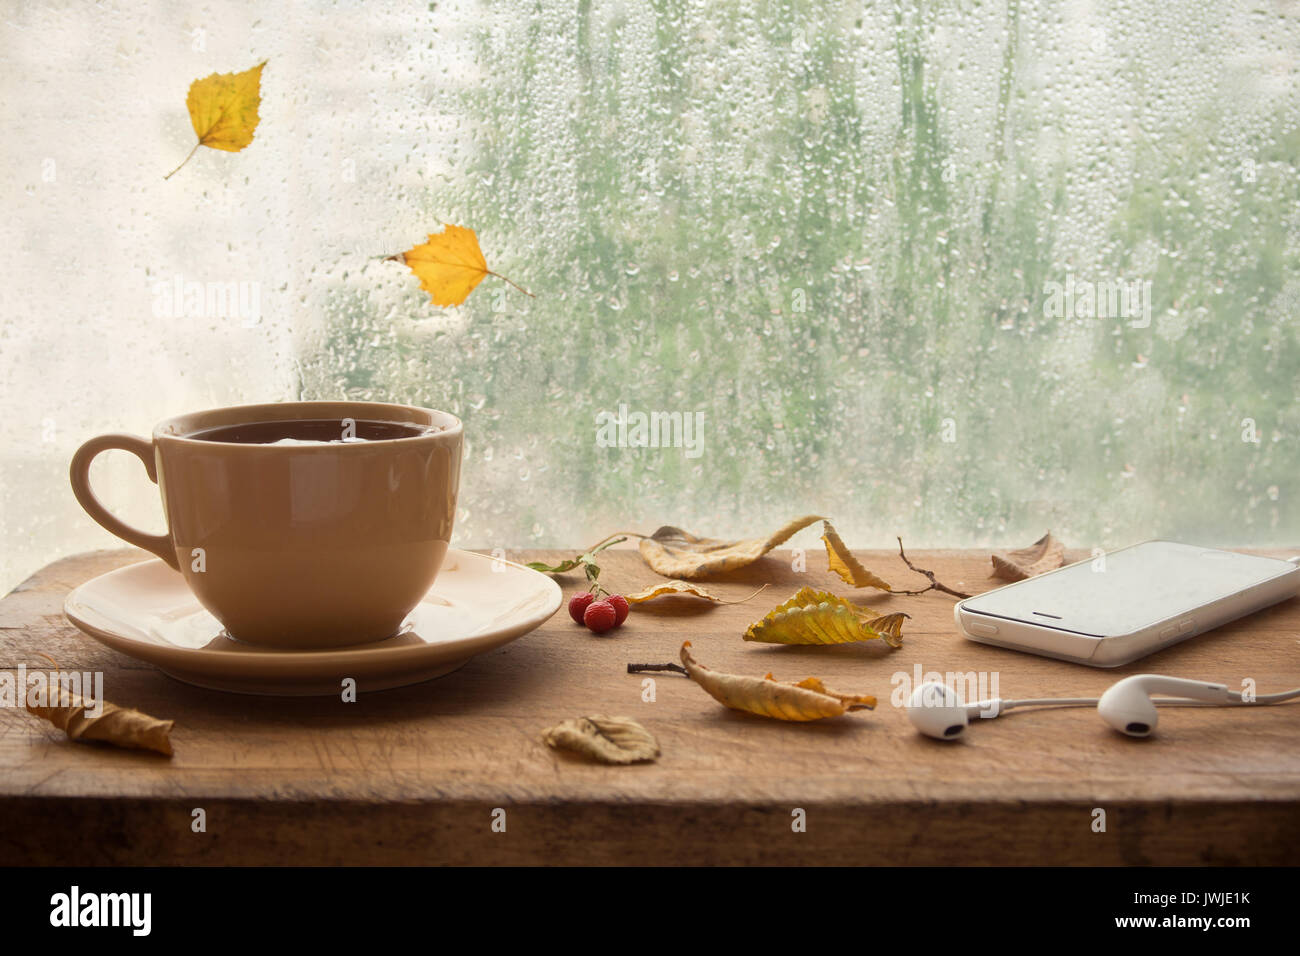 Cup of coffee or tea, smartphone and earbuds with autumn leaves near a window. Autumn playlist concept. Autumn music for rainy days. - Stock Image